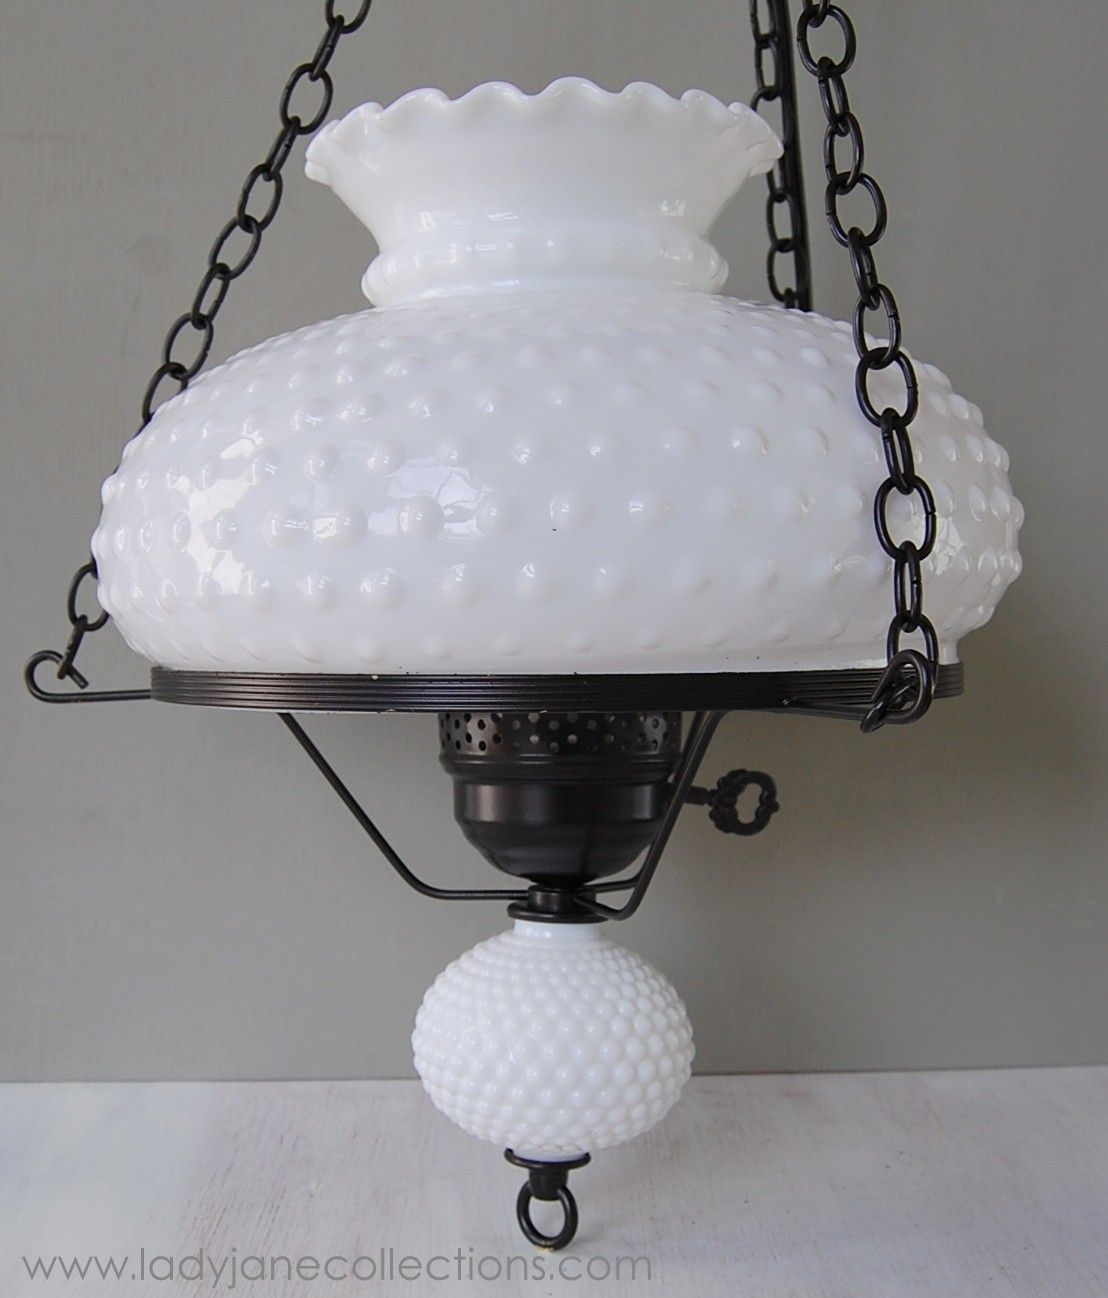 Hanging Lamp Light: Vintage Milk Glass Hanging Lamp Chandelier